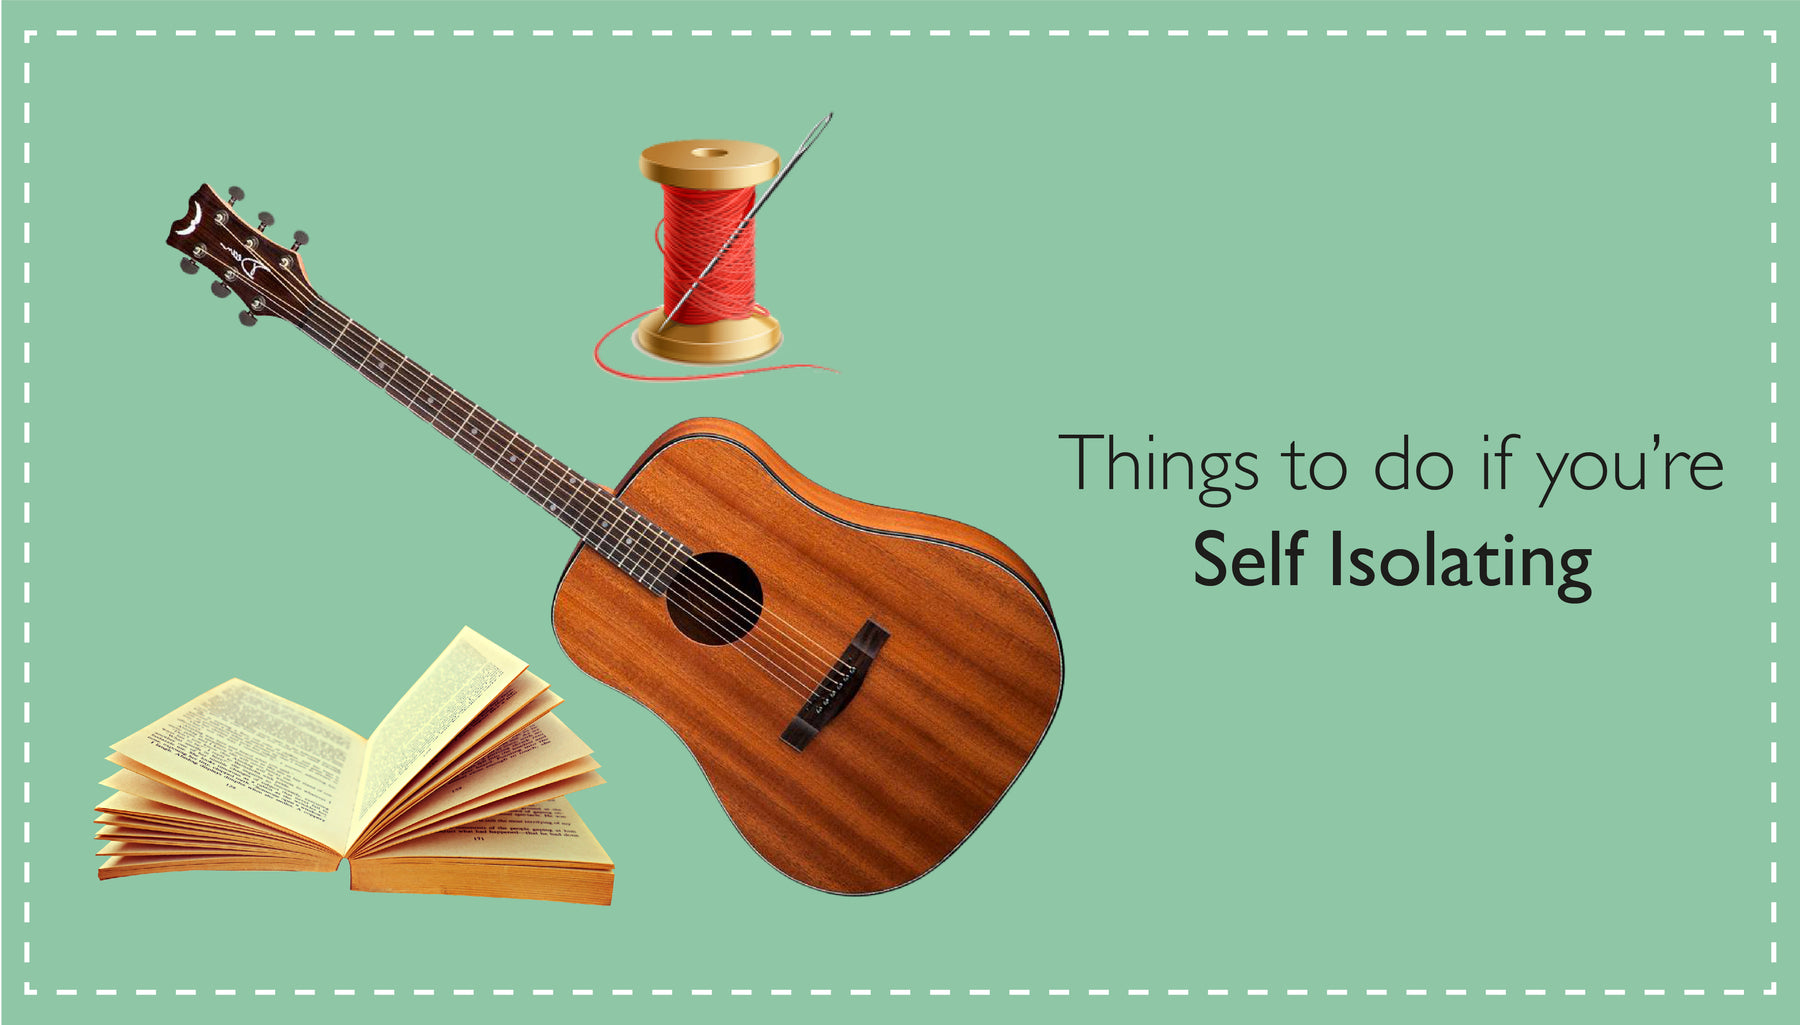 Things to do if you're self-isolating